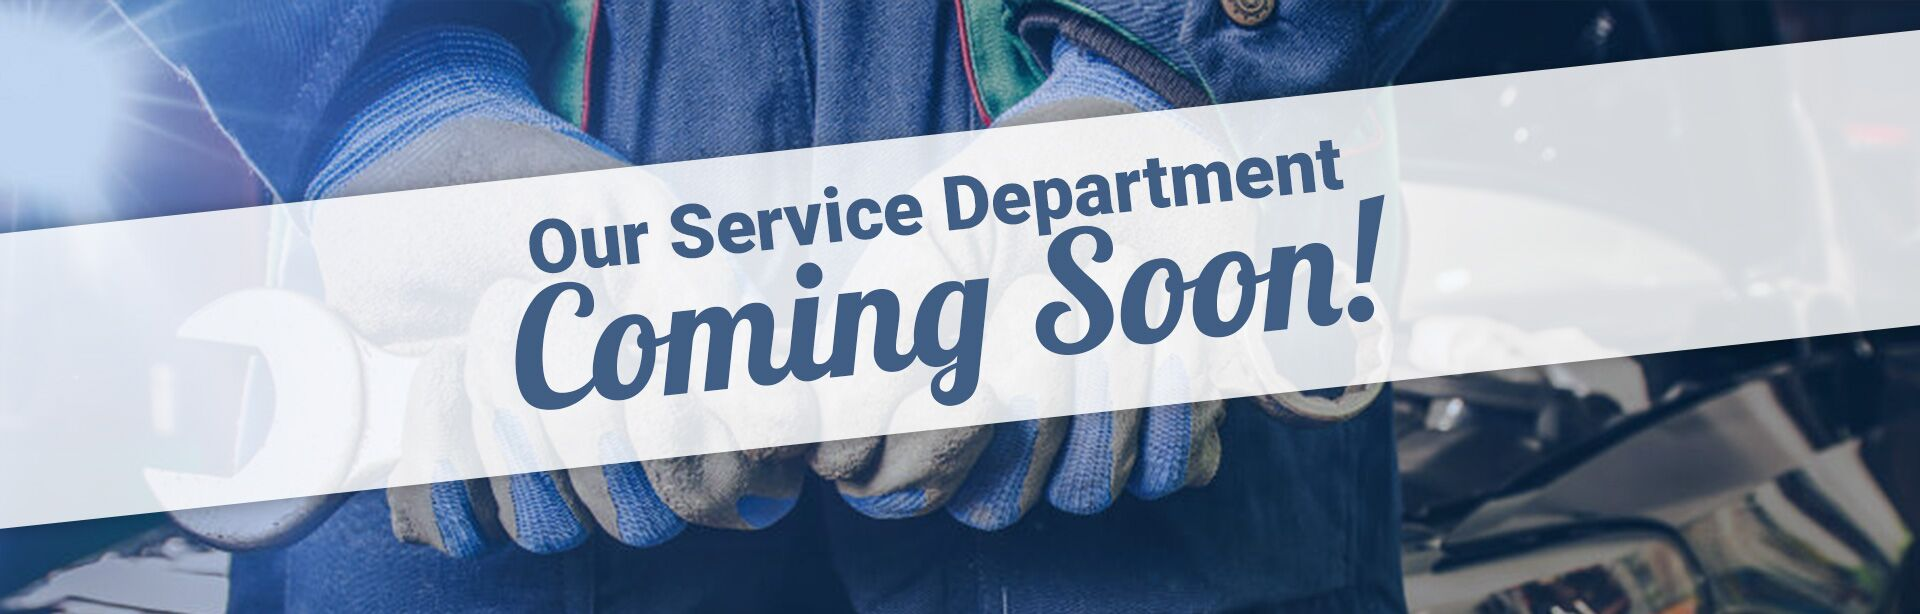 Service Department Coming Soon